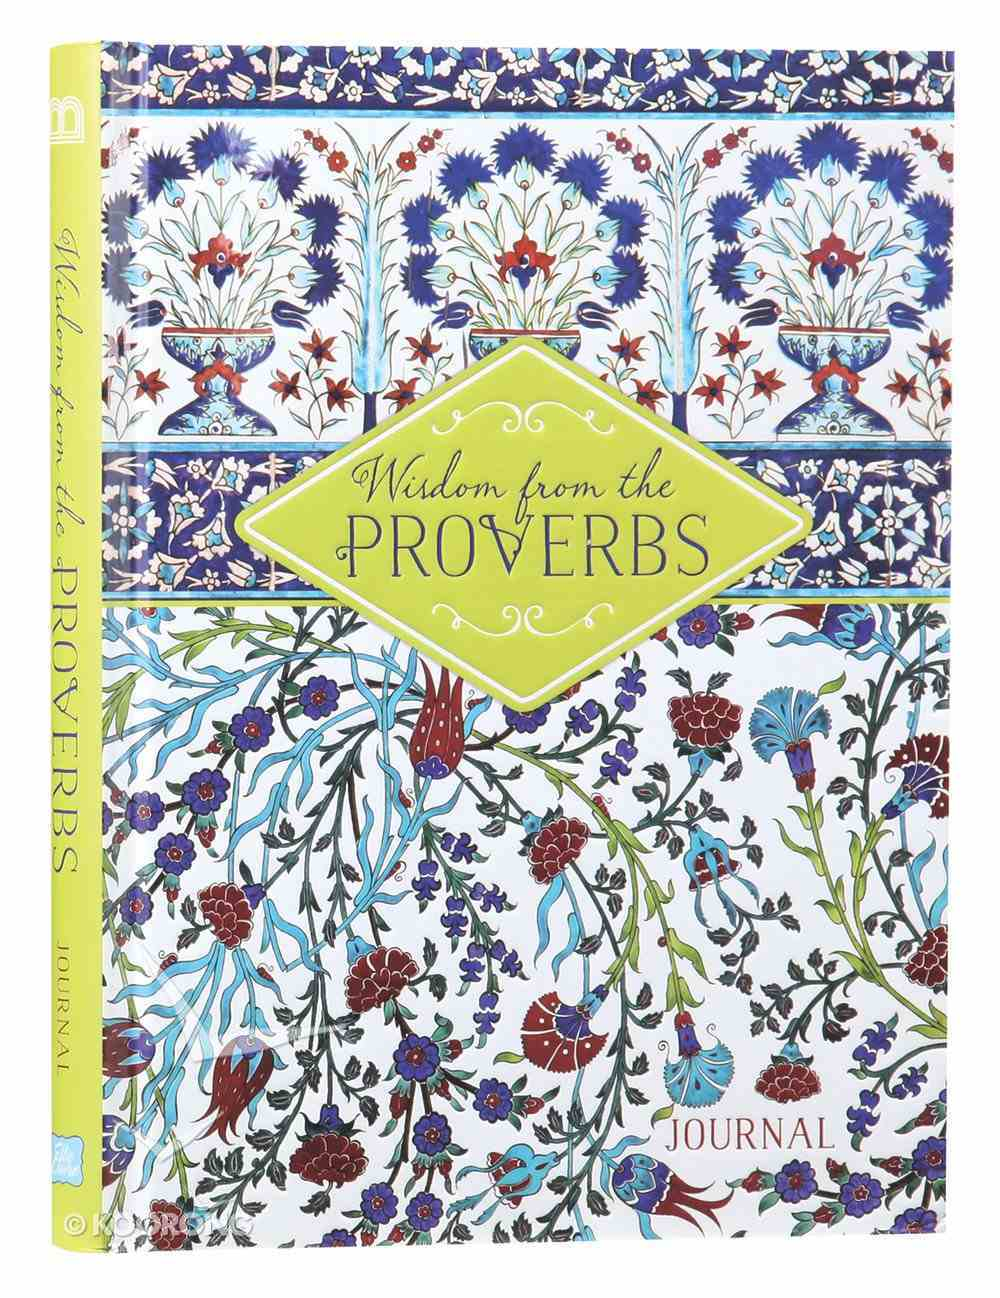 Wisdom From the Proverbs Journal Hardback